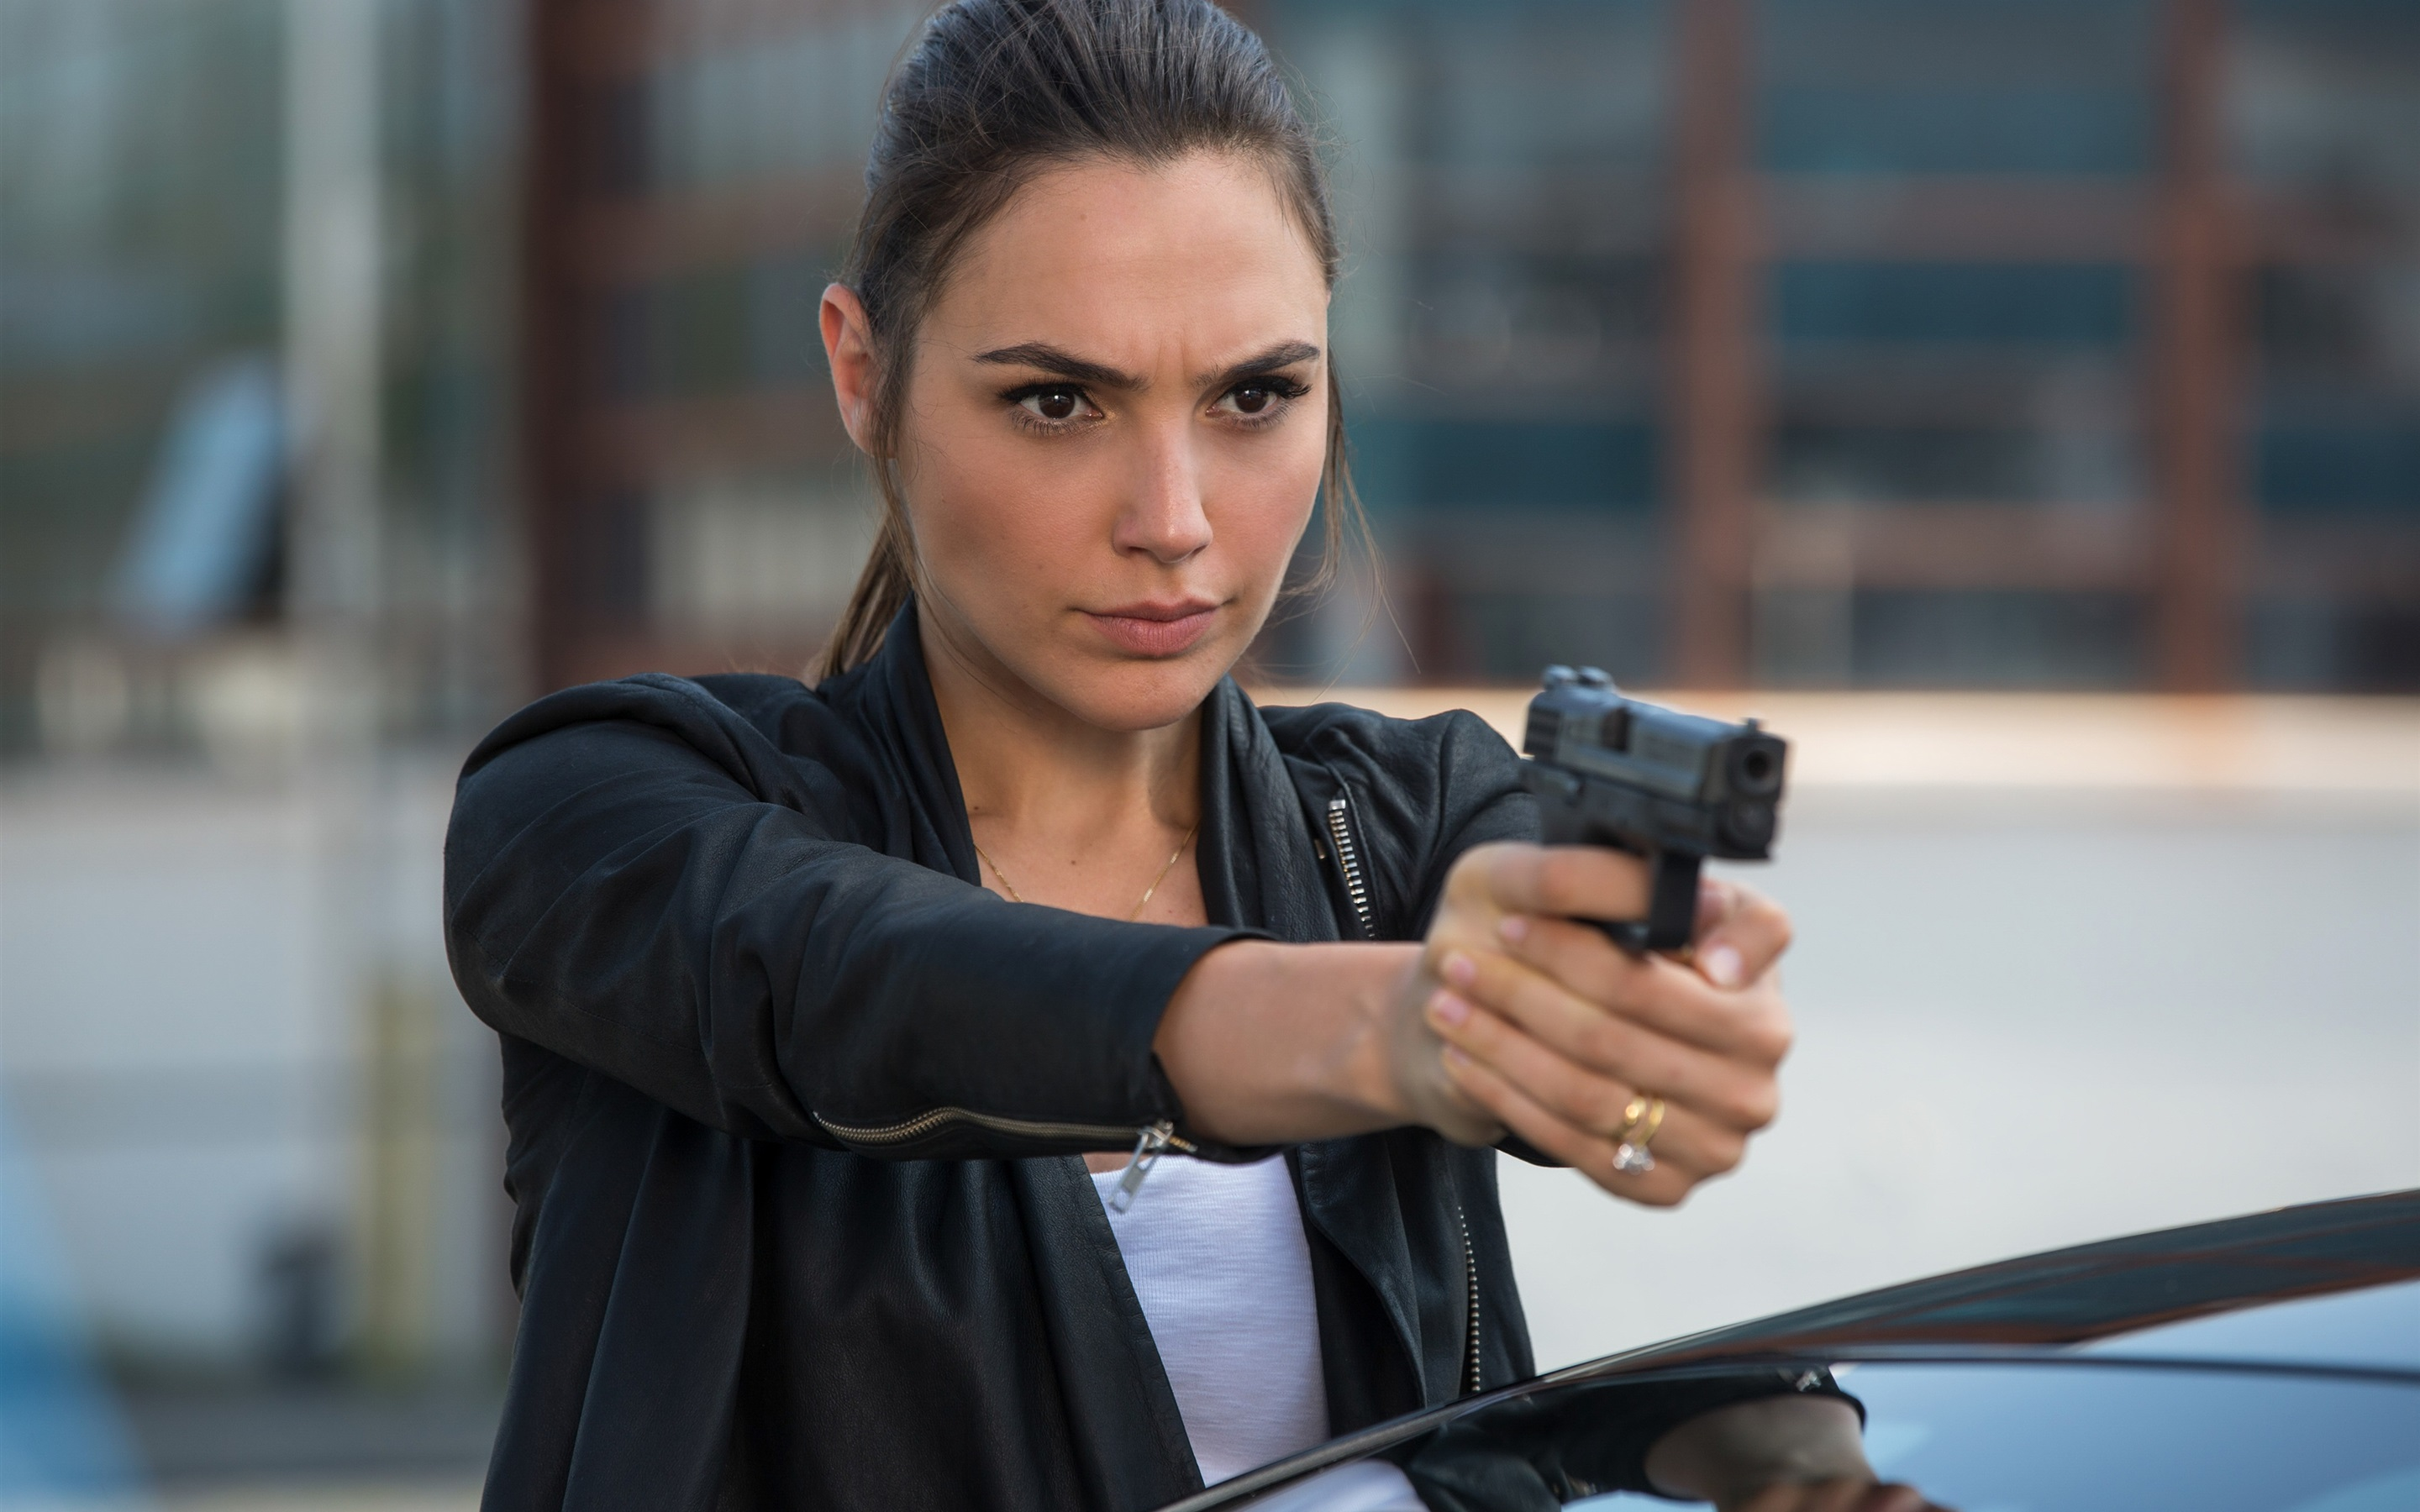 Keeping Up With The Joneses Download: Download Wallpaper 2880x1800 Gal Gadot, Keeping Up With